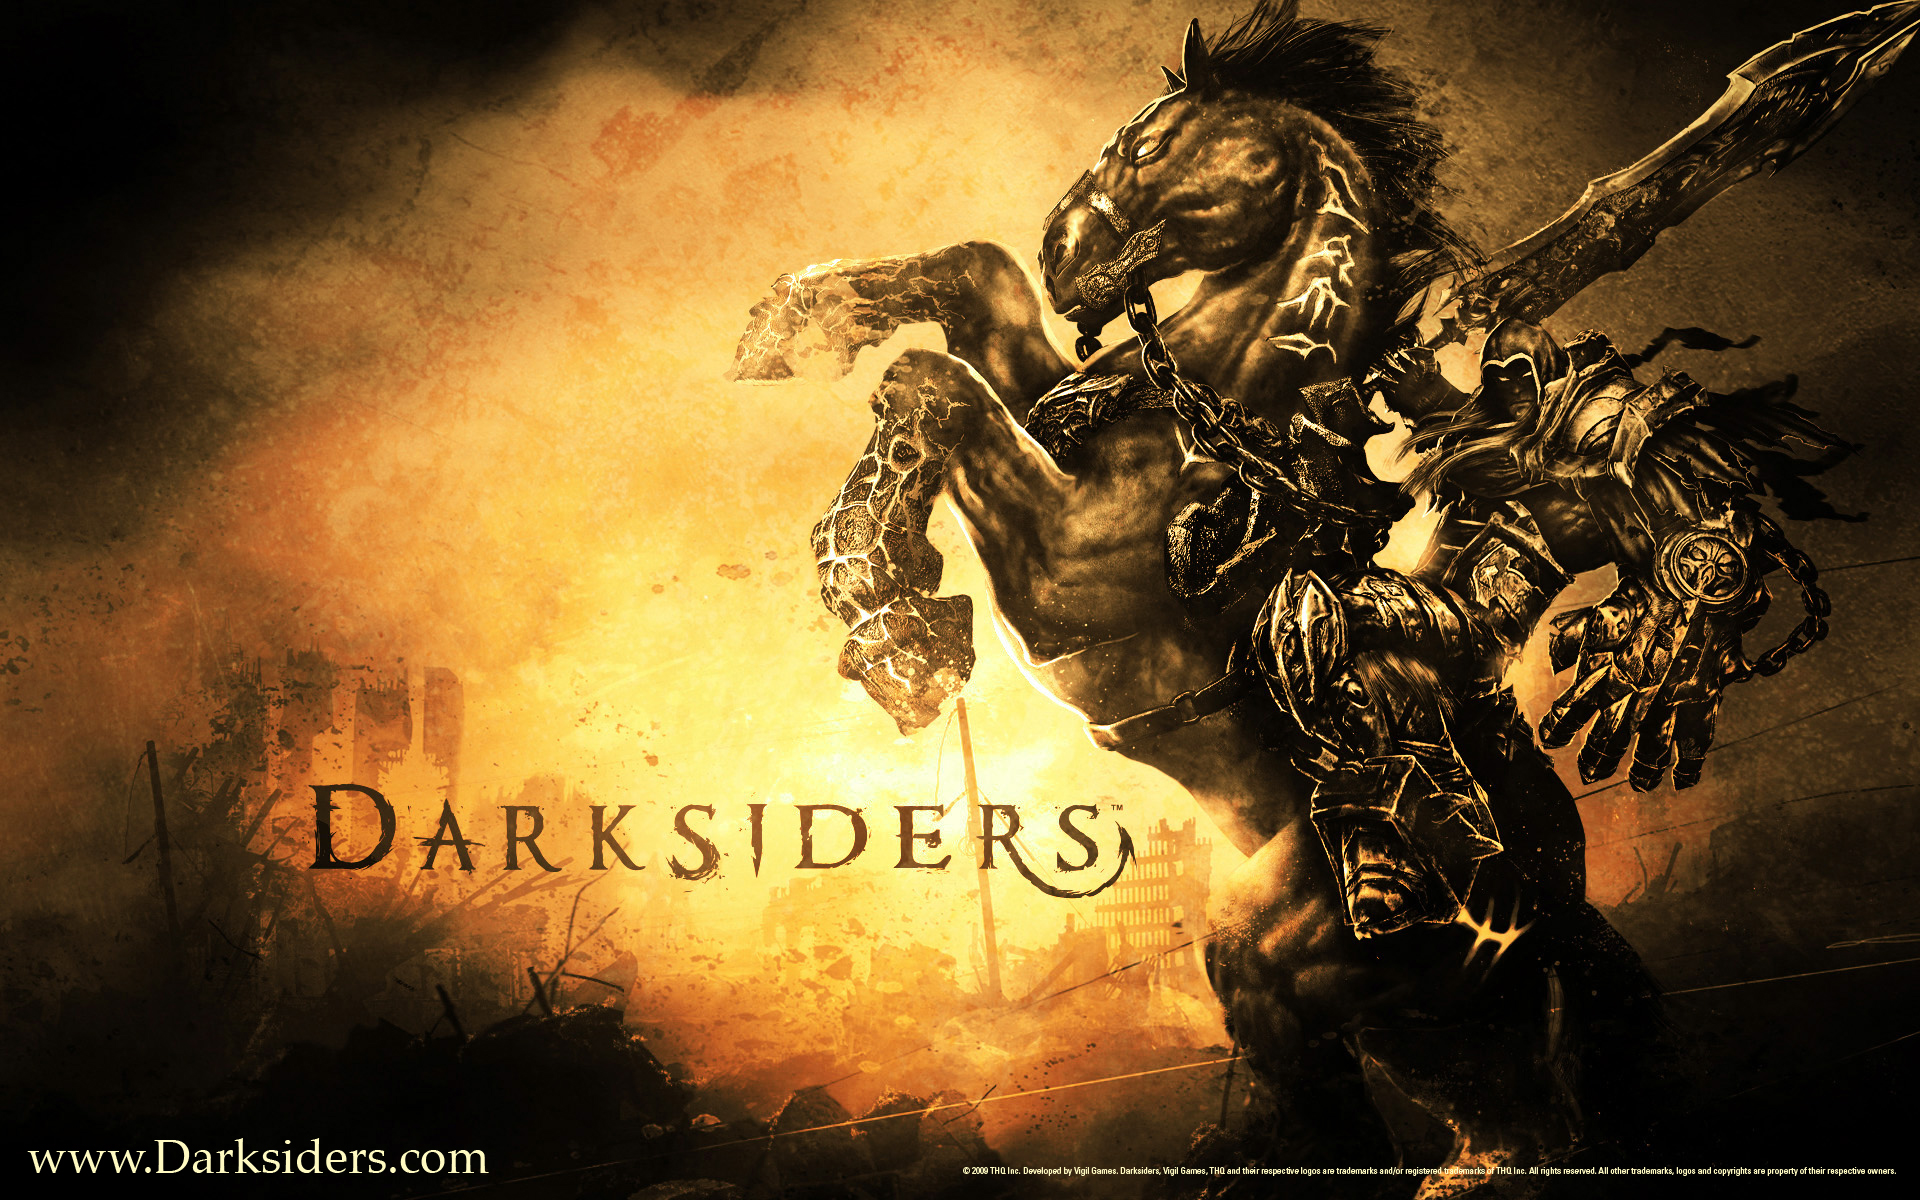 Hd Wallpapers Darksiders Death 668 X 1000 632 Kb Png HD Wallpapers 1920x1200